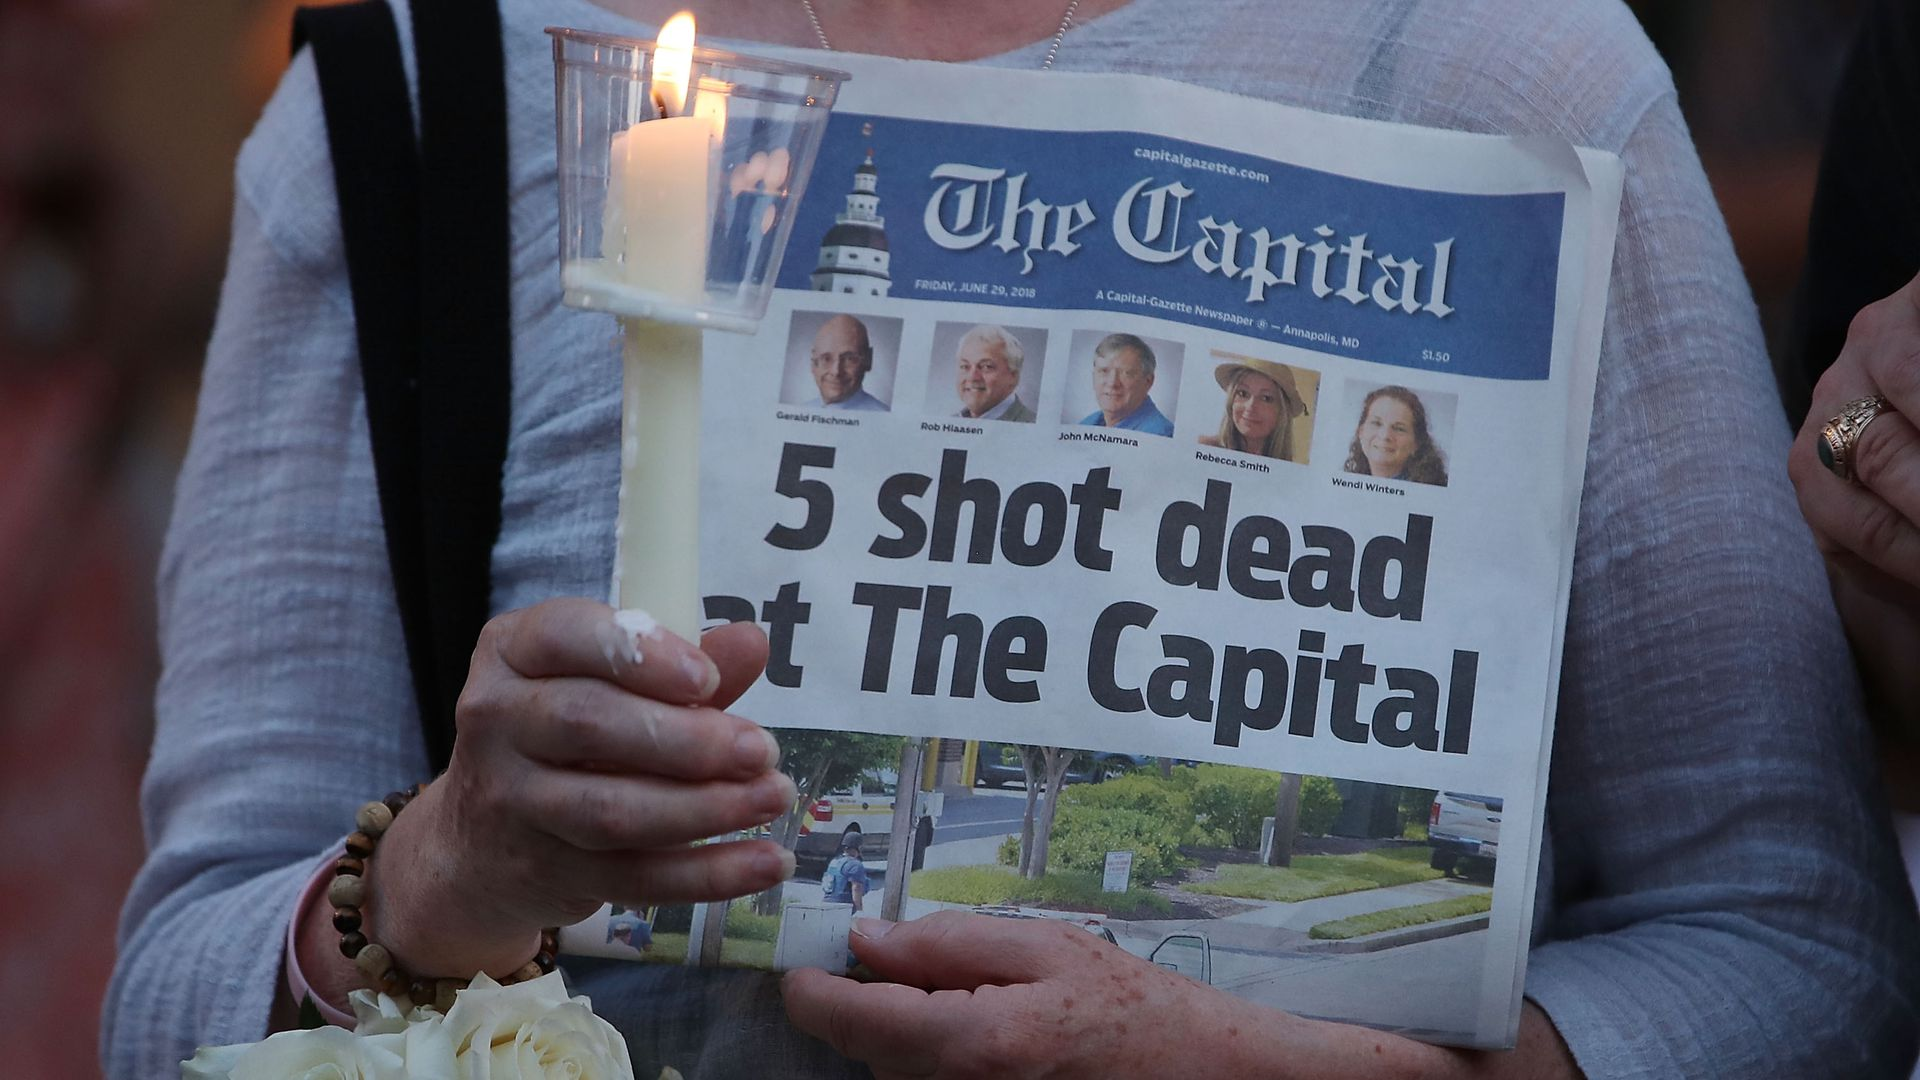 The U.S. is one of the world's deadliest countries for journalists